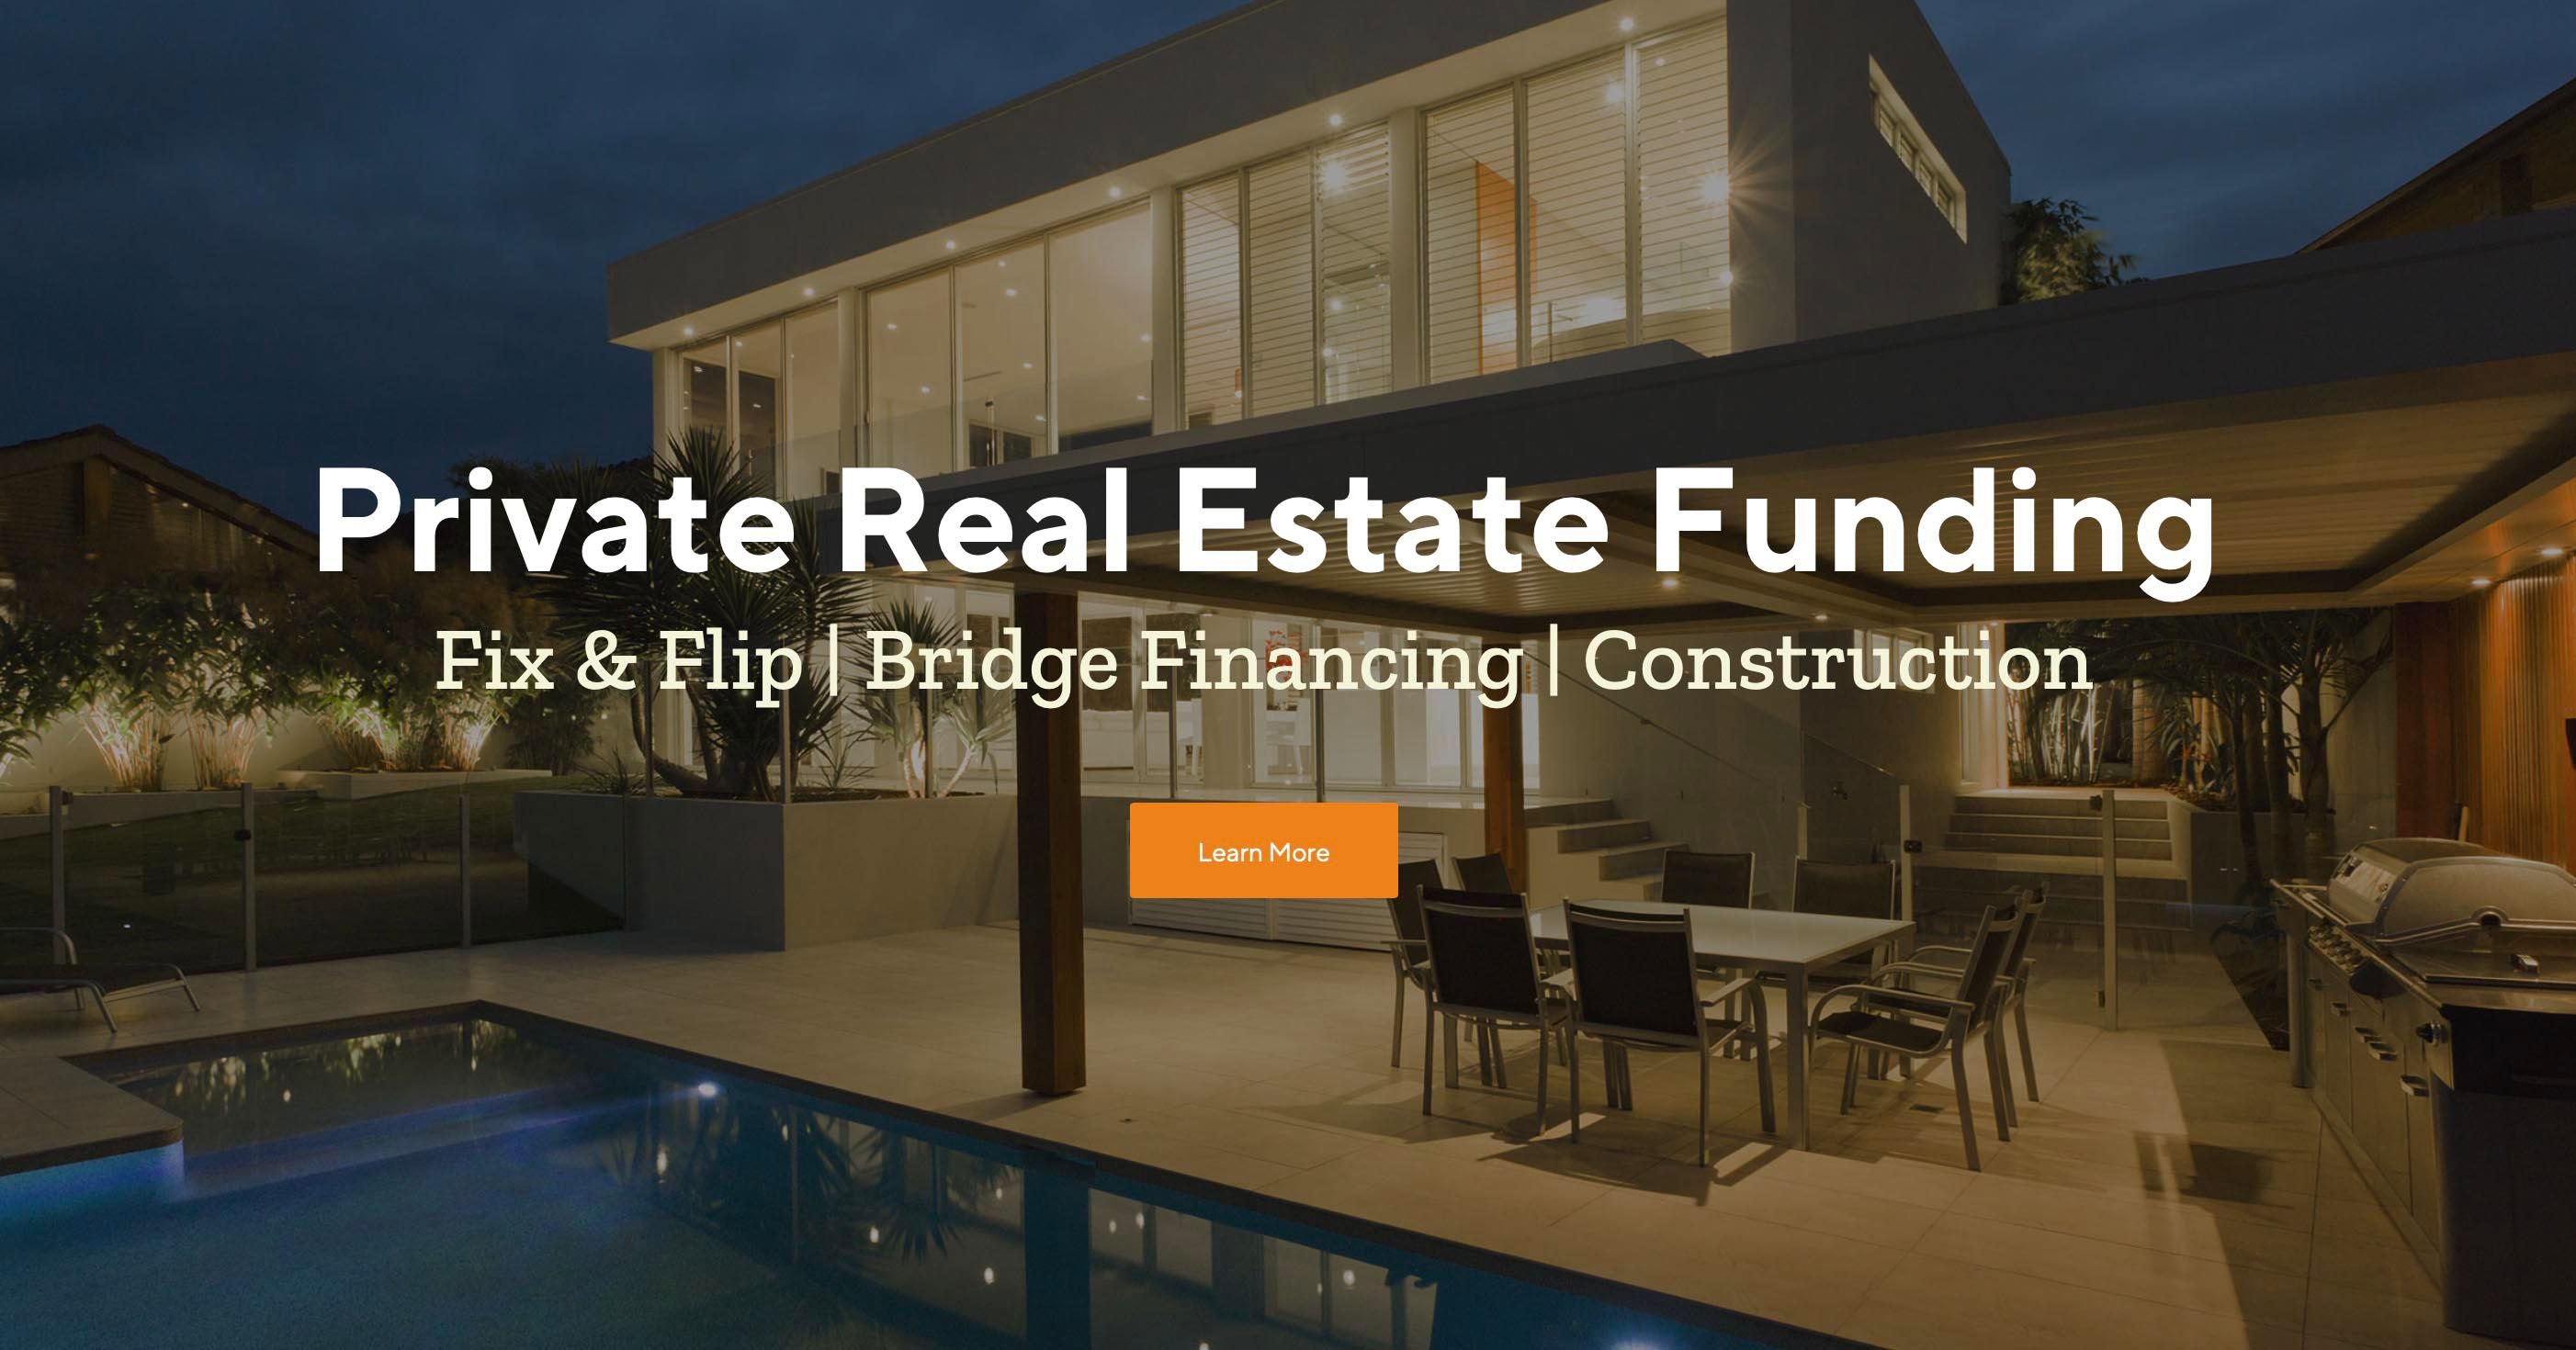 Private Real Estate Funding